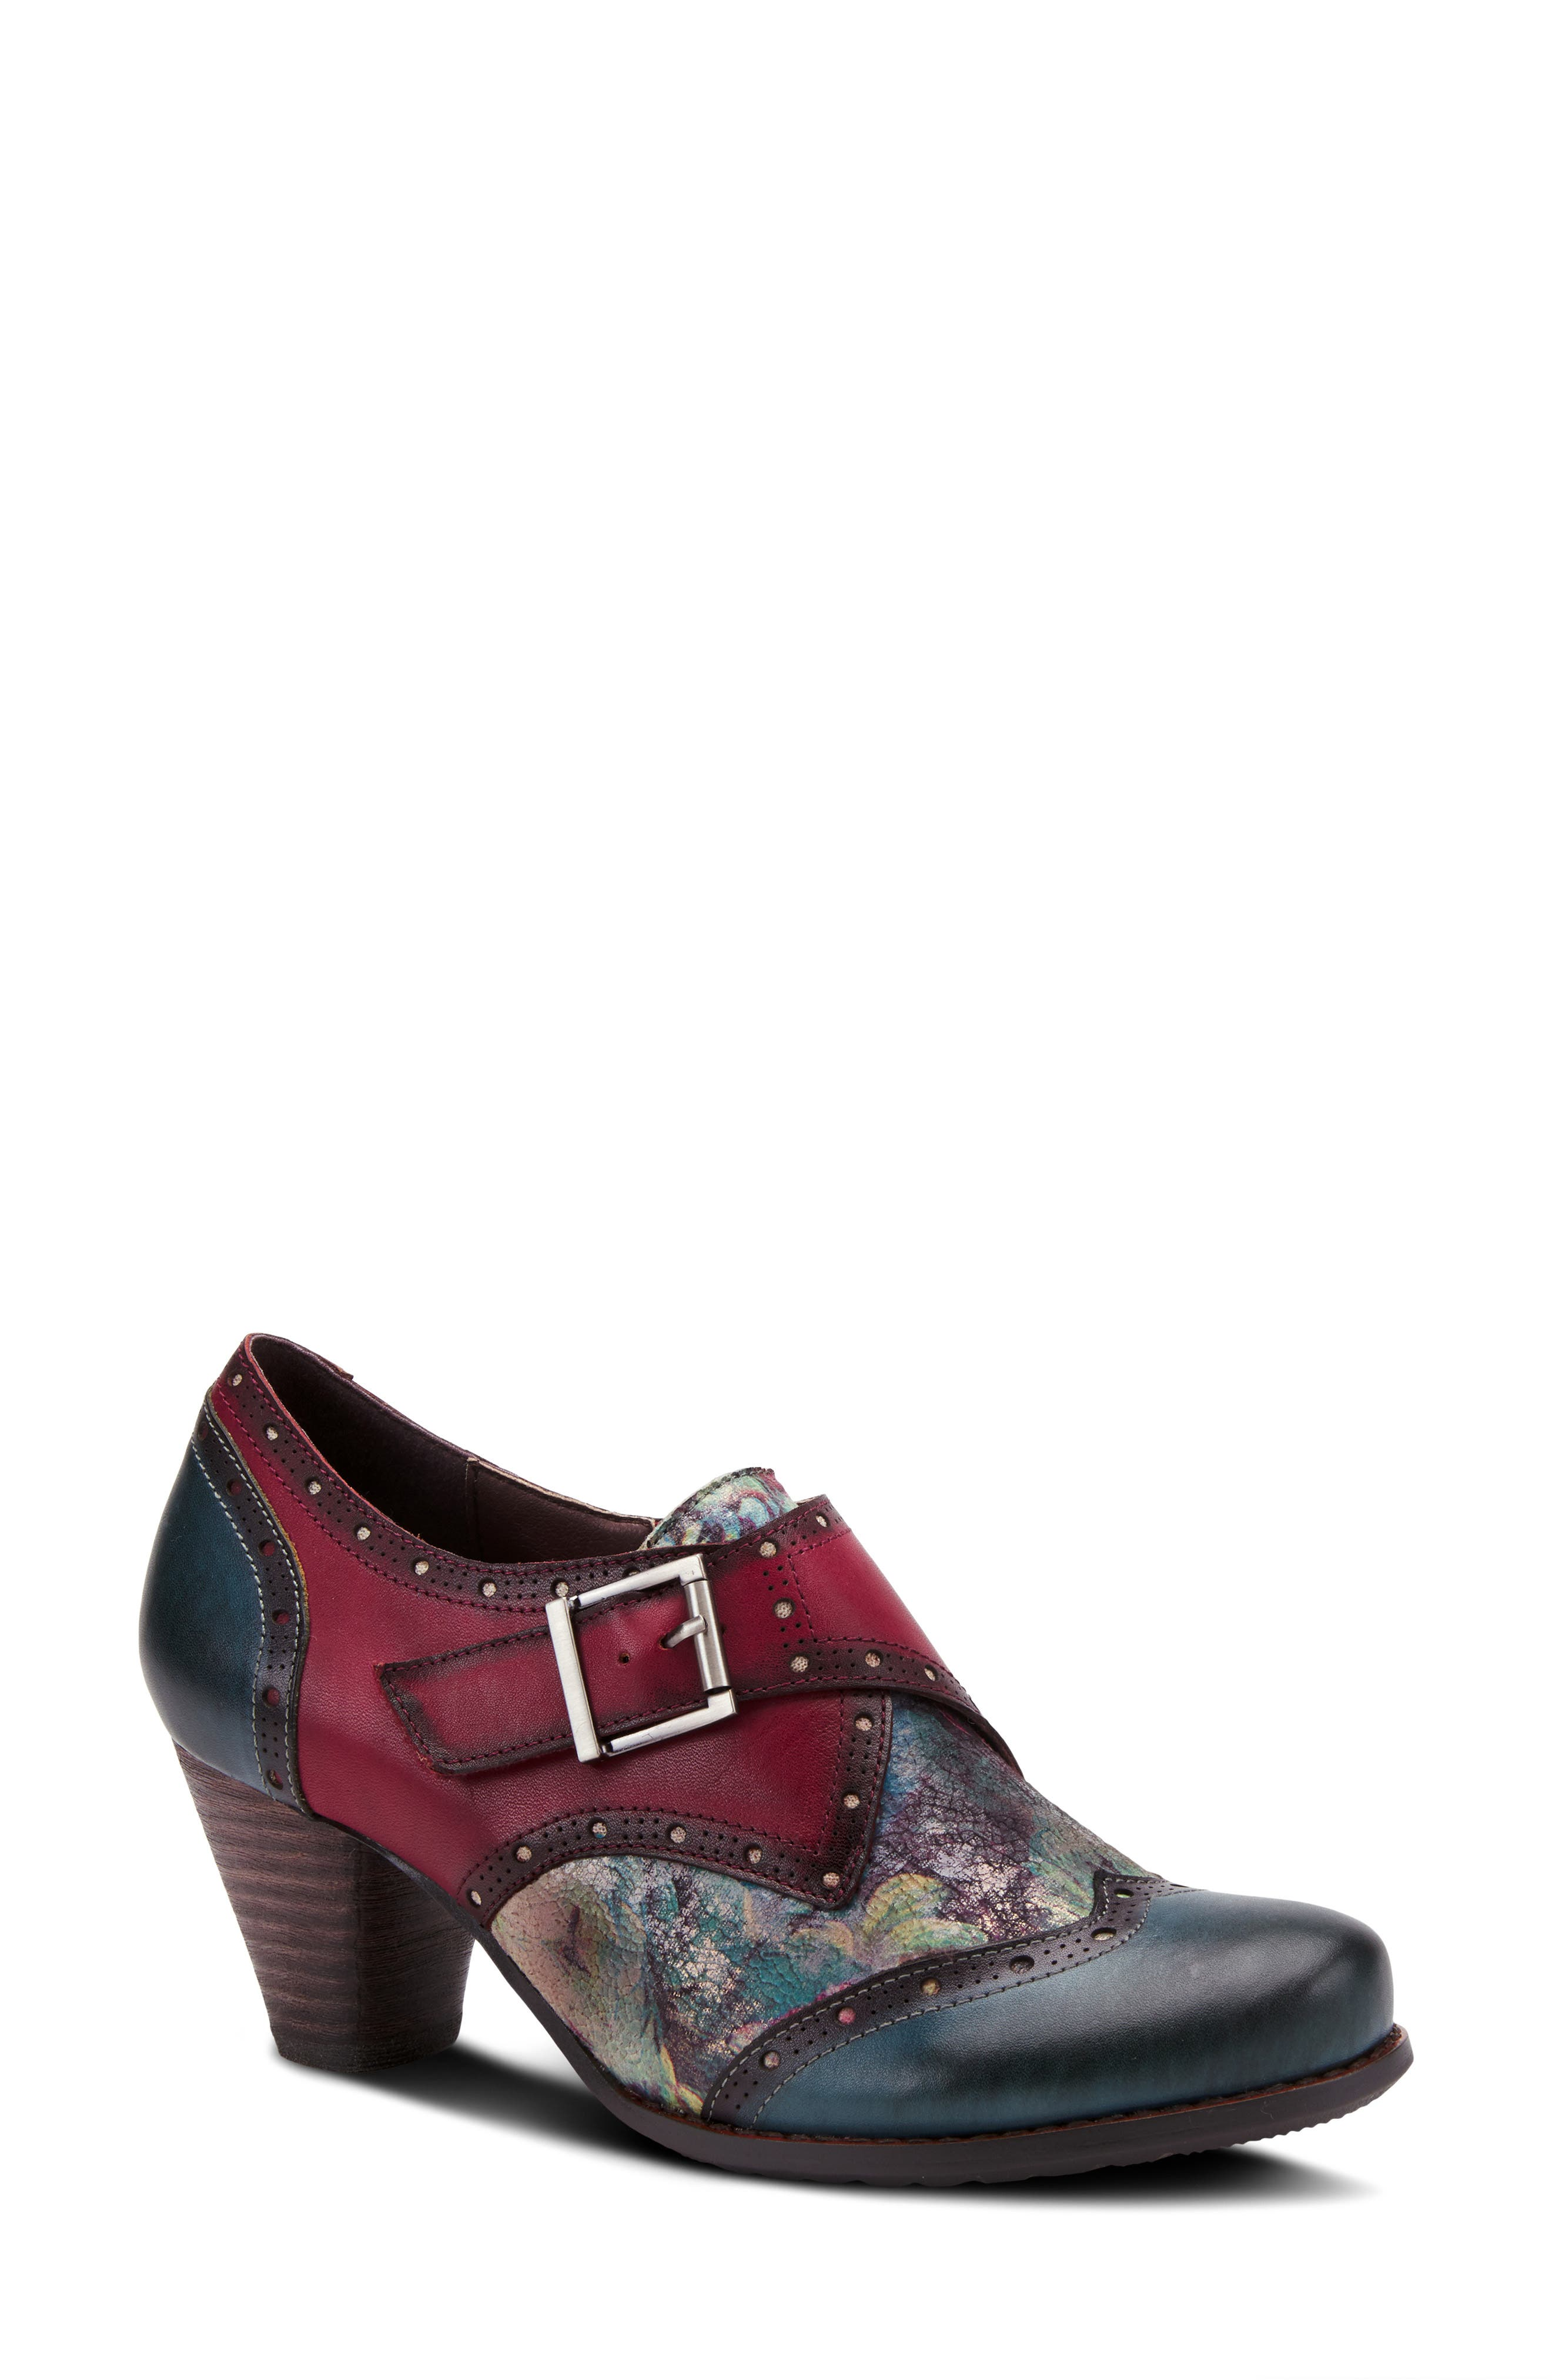 Menswear inspiration meets vintage-chic style on this buckle-embellished pump fashioned from hand-stained leather and grounded by a well-cushioned footbed. Style Name:L\\\'Artiste Therise Pump (Women). Style Number: 6143702. Available in stores.